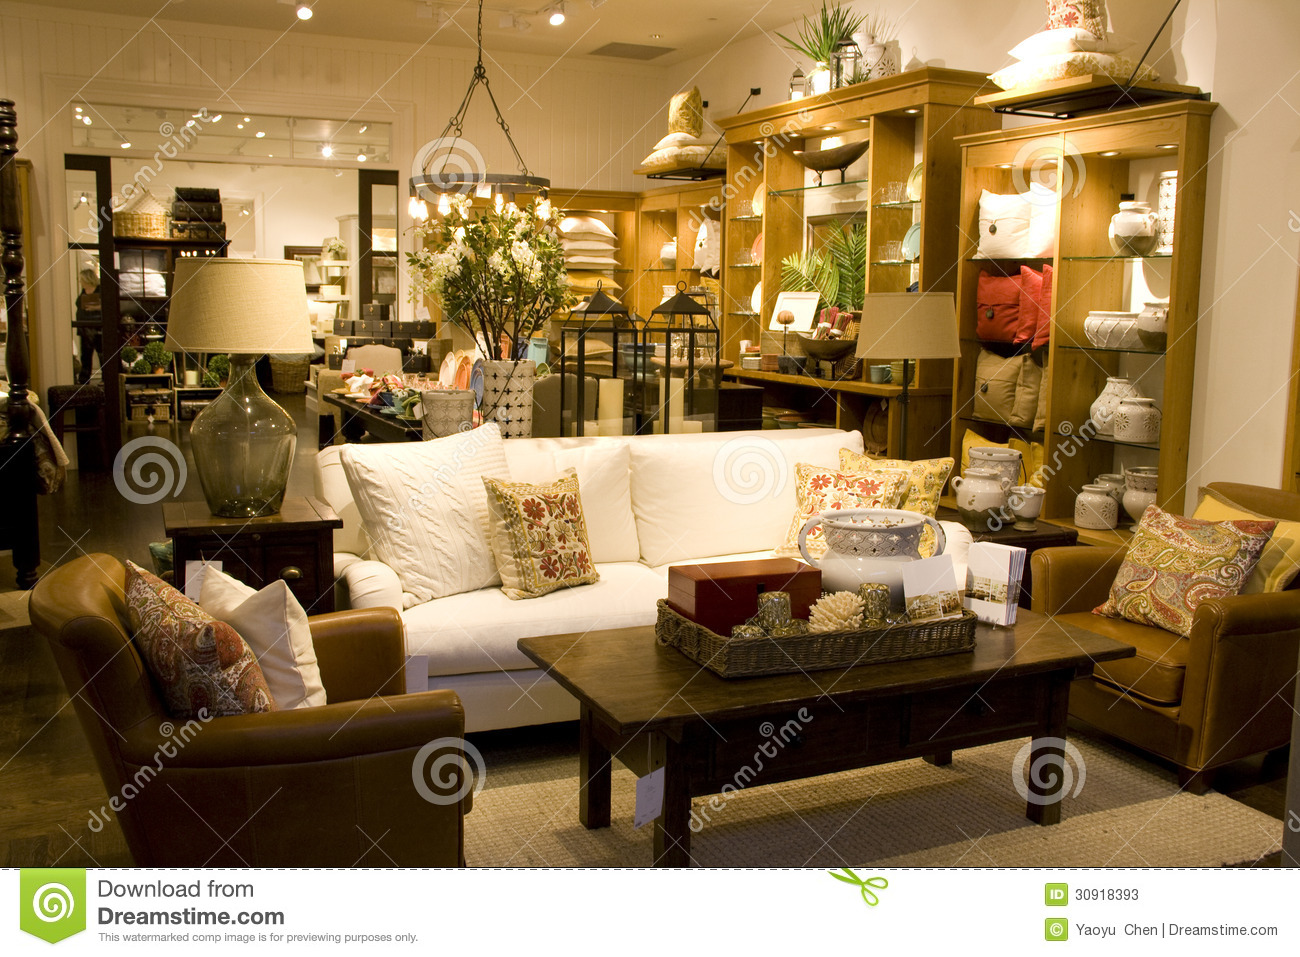 Furniture and home decor store stock photos image 30918393 for Home interior decor stores